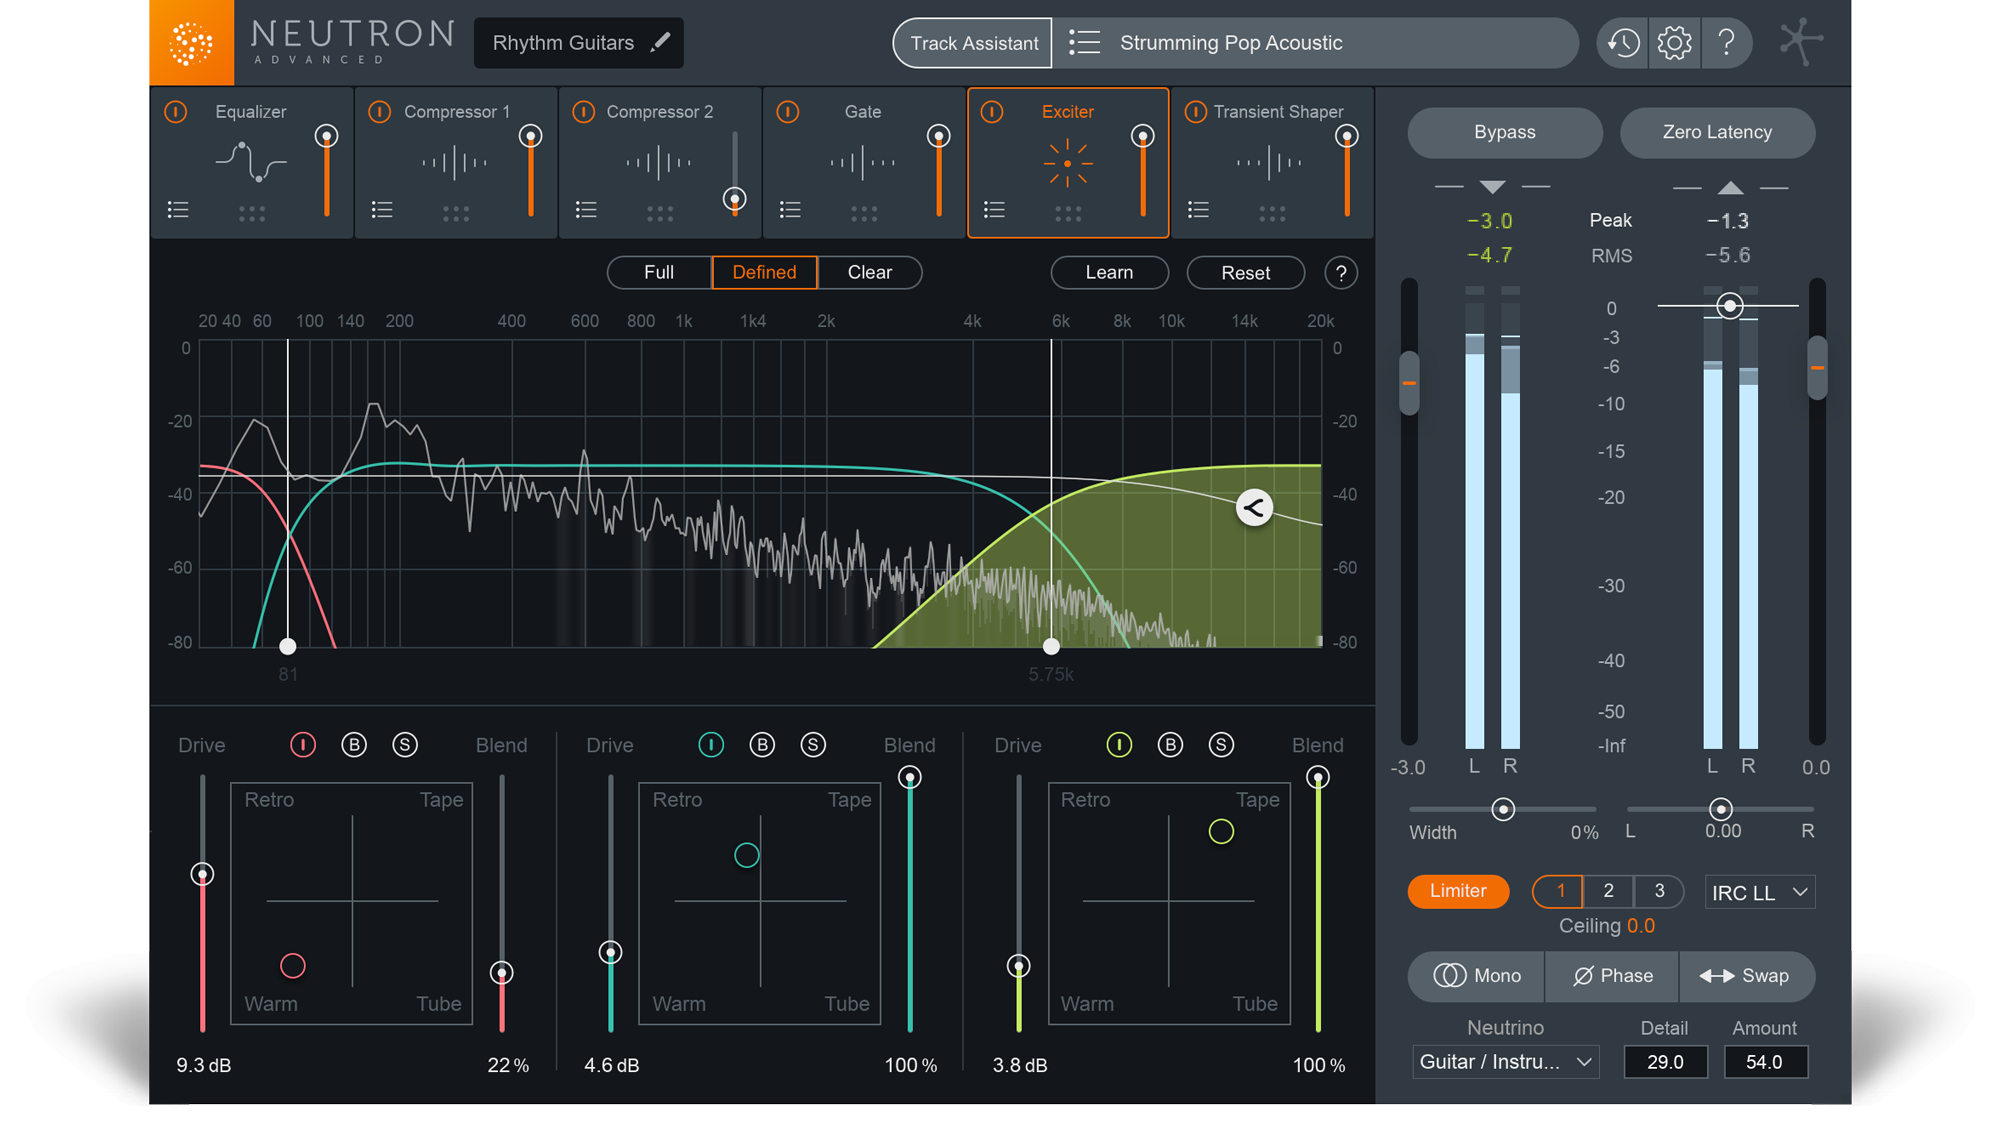 Neutron 2 A Smarter Way To Mix Izotope Audio Mixing Tools Car Stereo Wiring Diagram Automation Control Blog Industrial